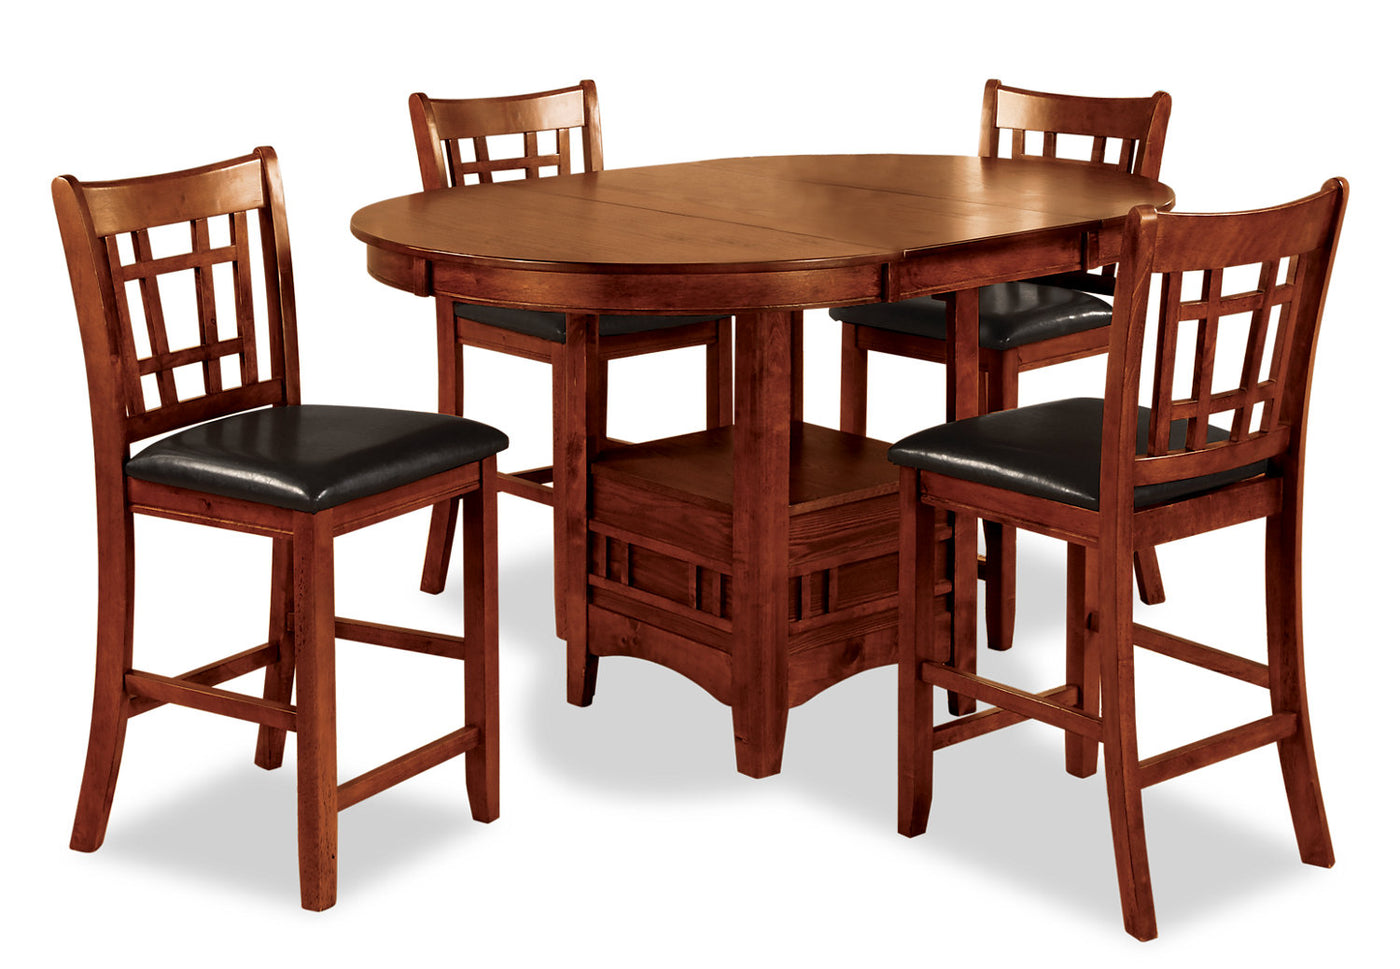 Dalton 5 Piece Oak Counter Height Dining Package The Brick